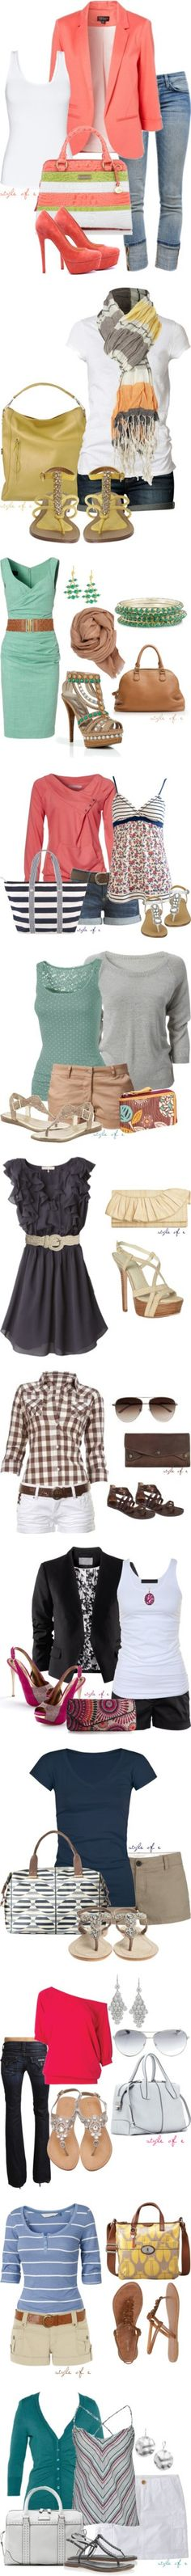 Cute outfit ideas. I would wear most of these.